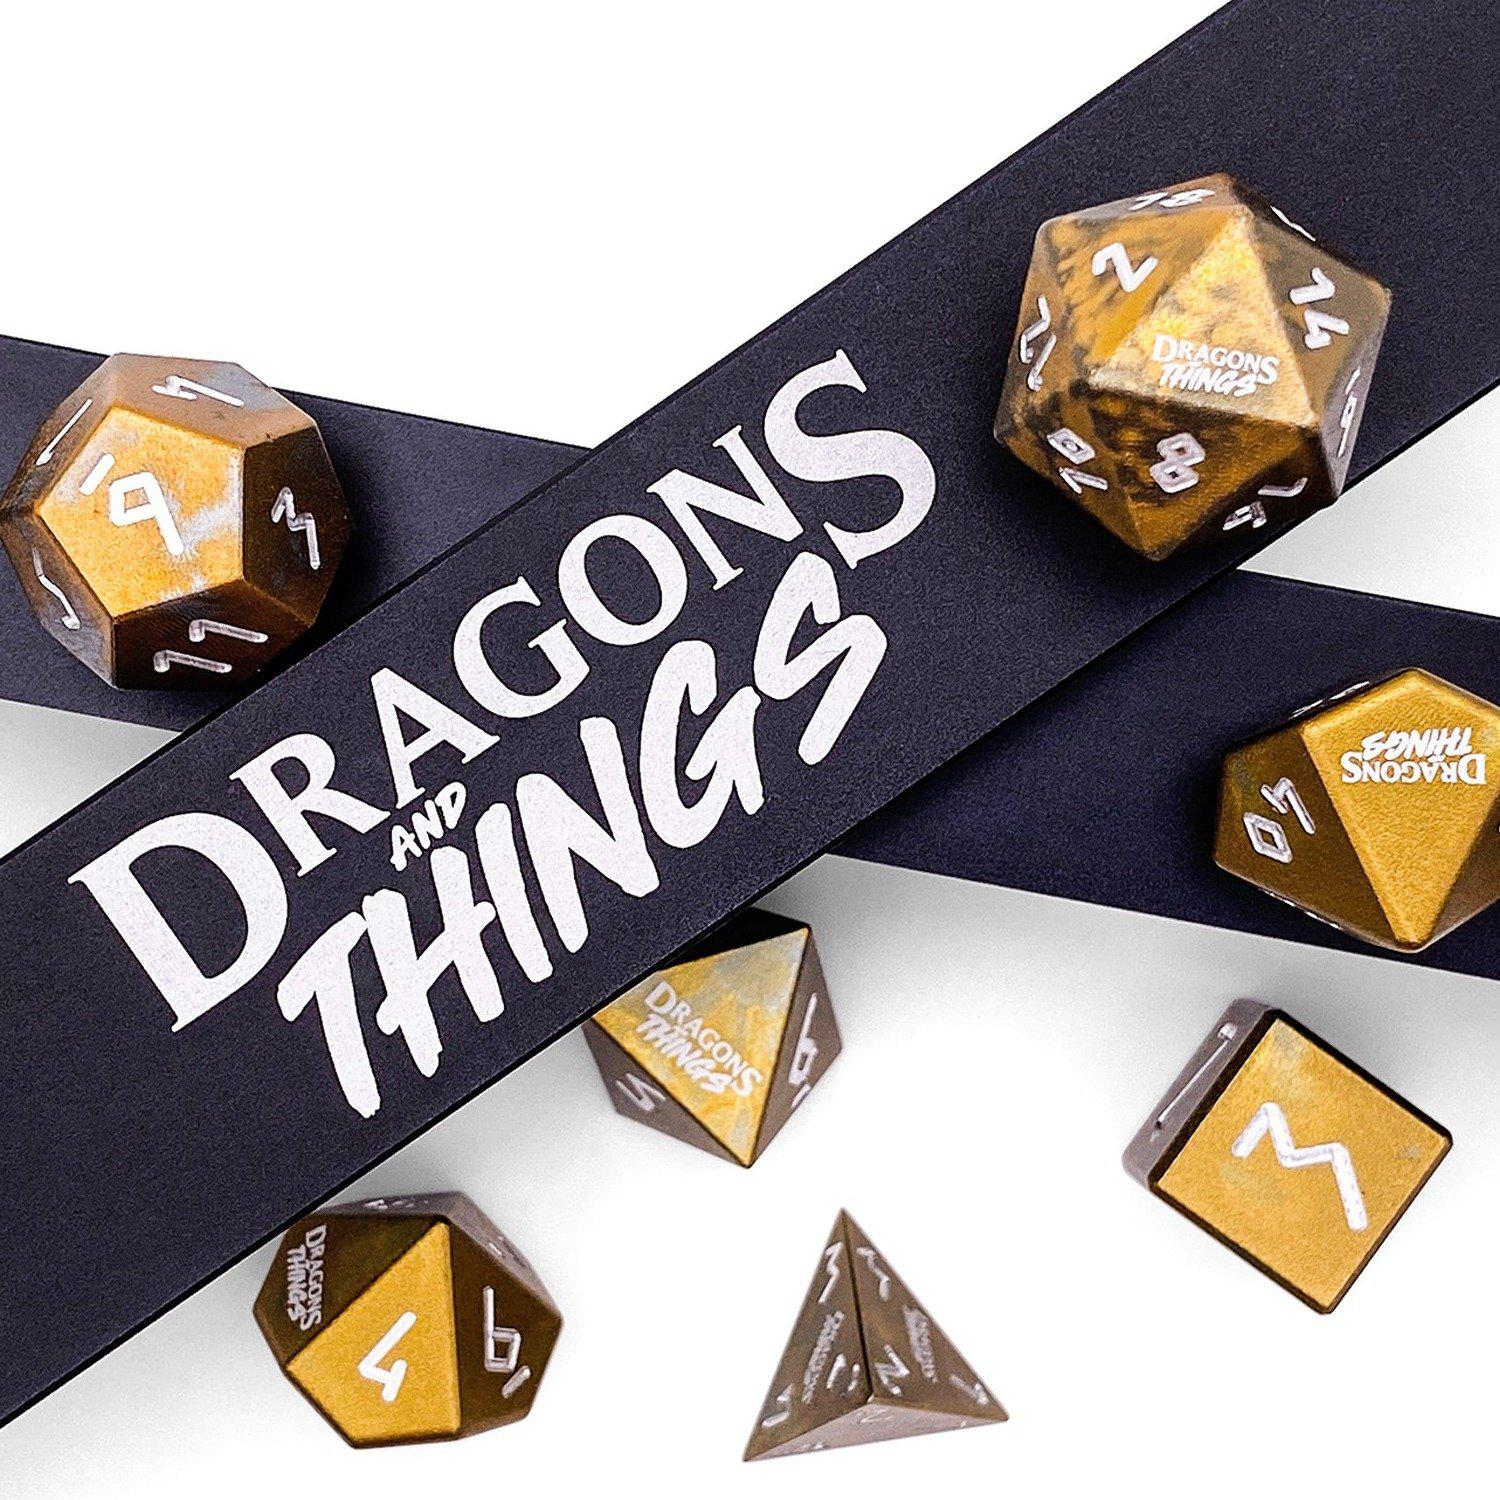 Dragons and Things Desert Sands - Precision CNC Aluminum Dice Set with Dice Vault